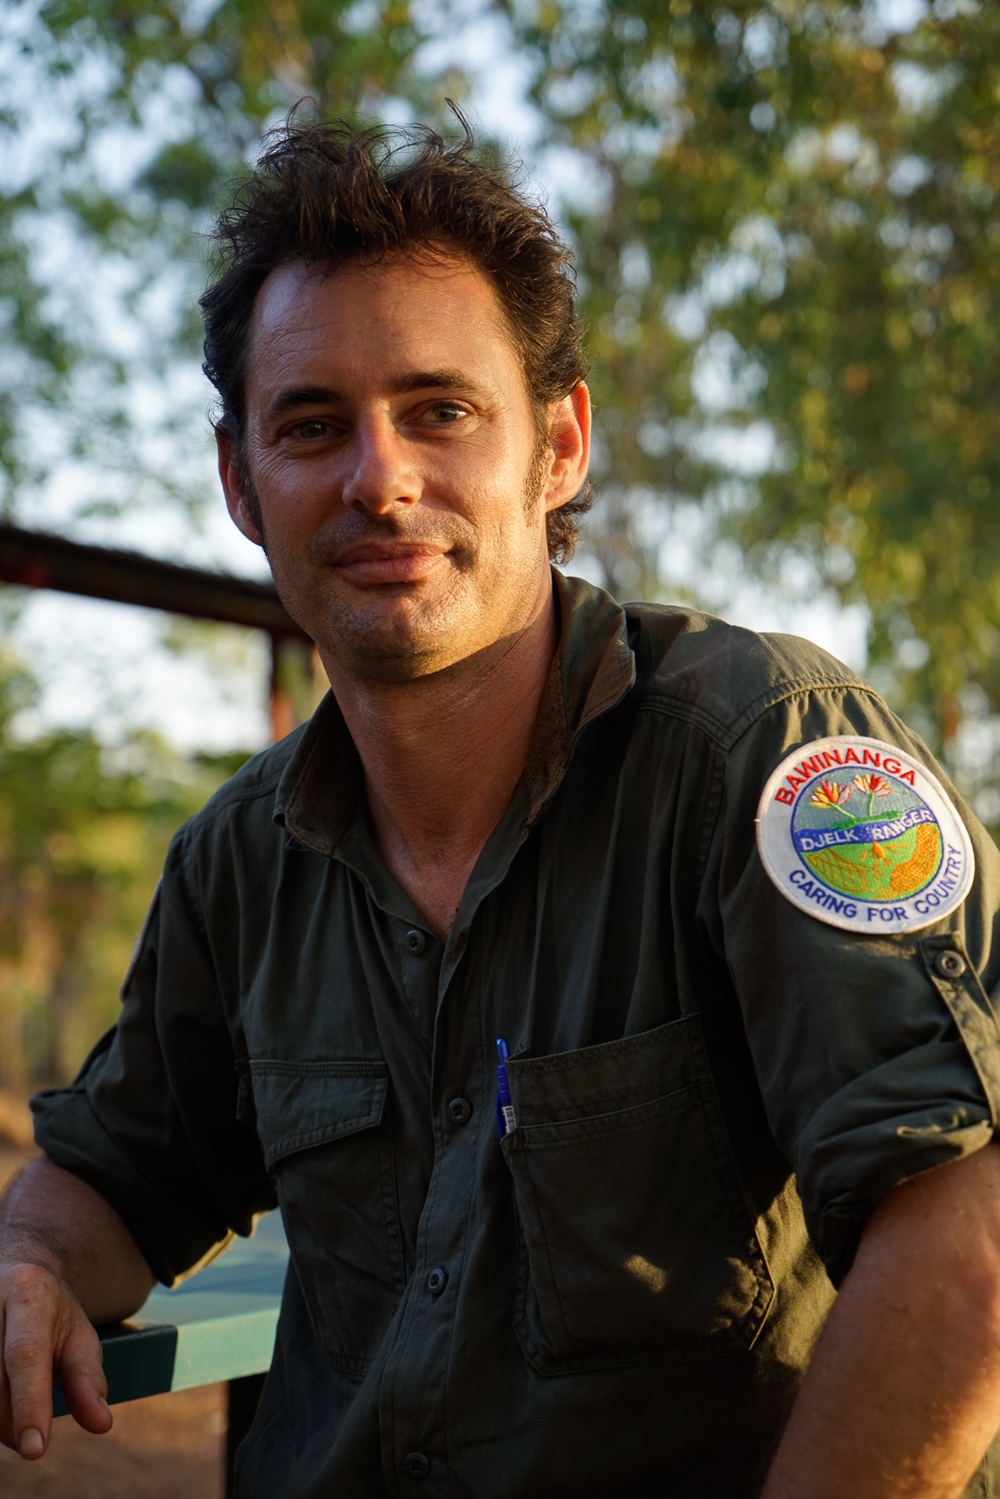 Head of the Djelk Rangers, Dominic Nicholls (photo by Guy Fitzhardinge).